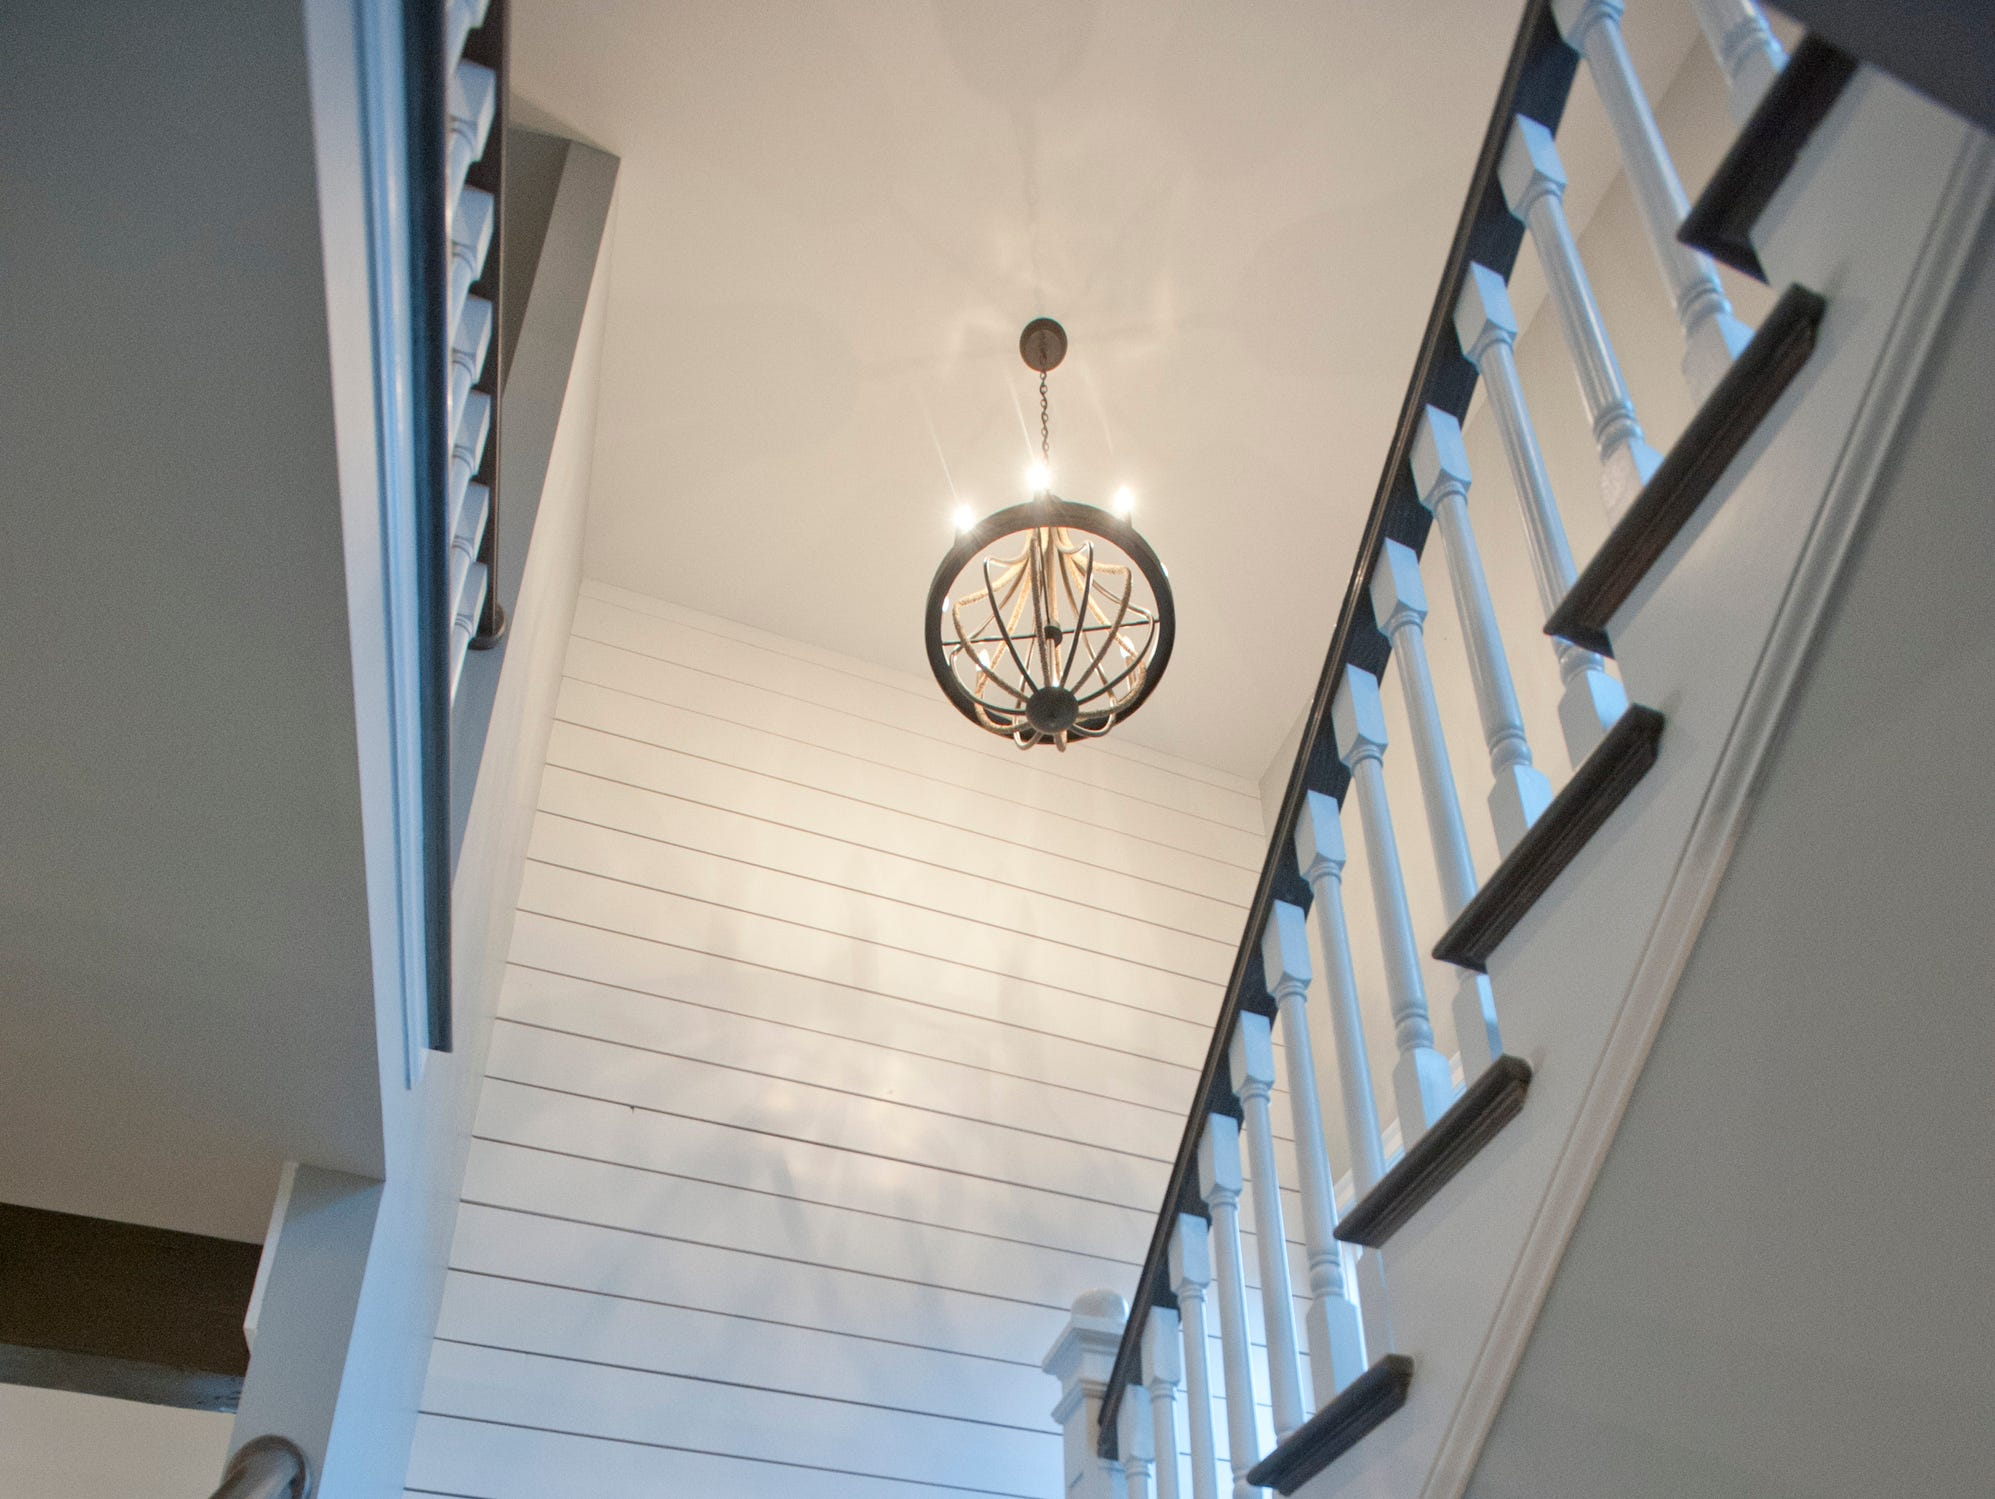 The angular stairwell to the second floor.01 March 2019